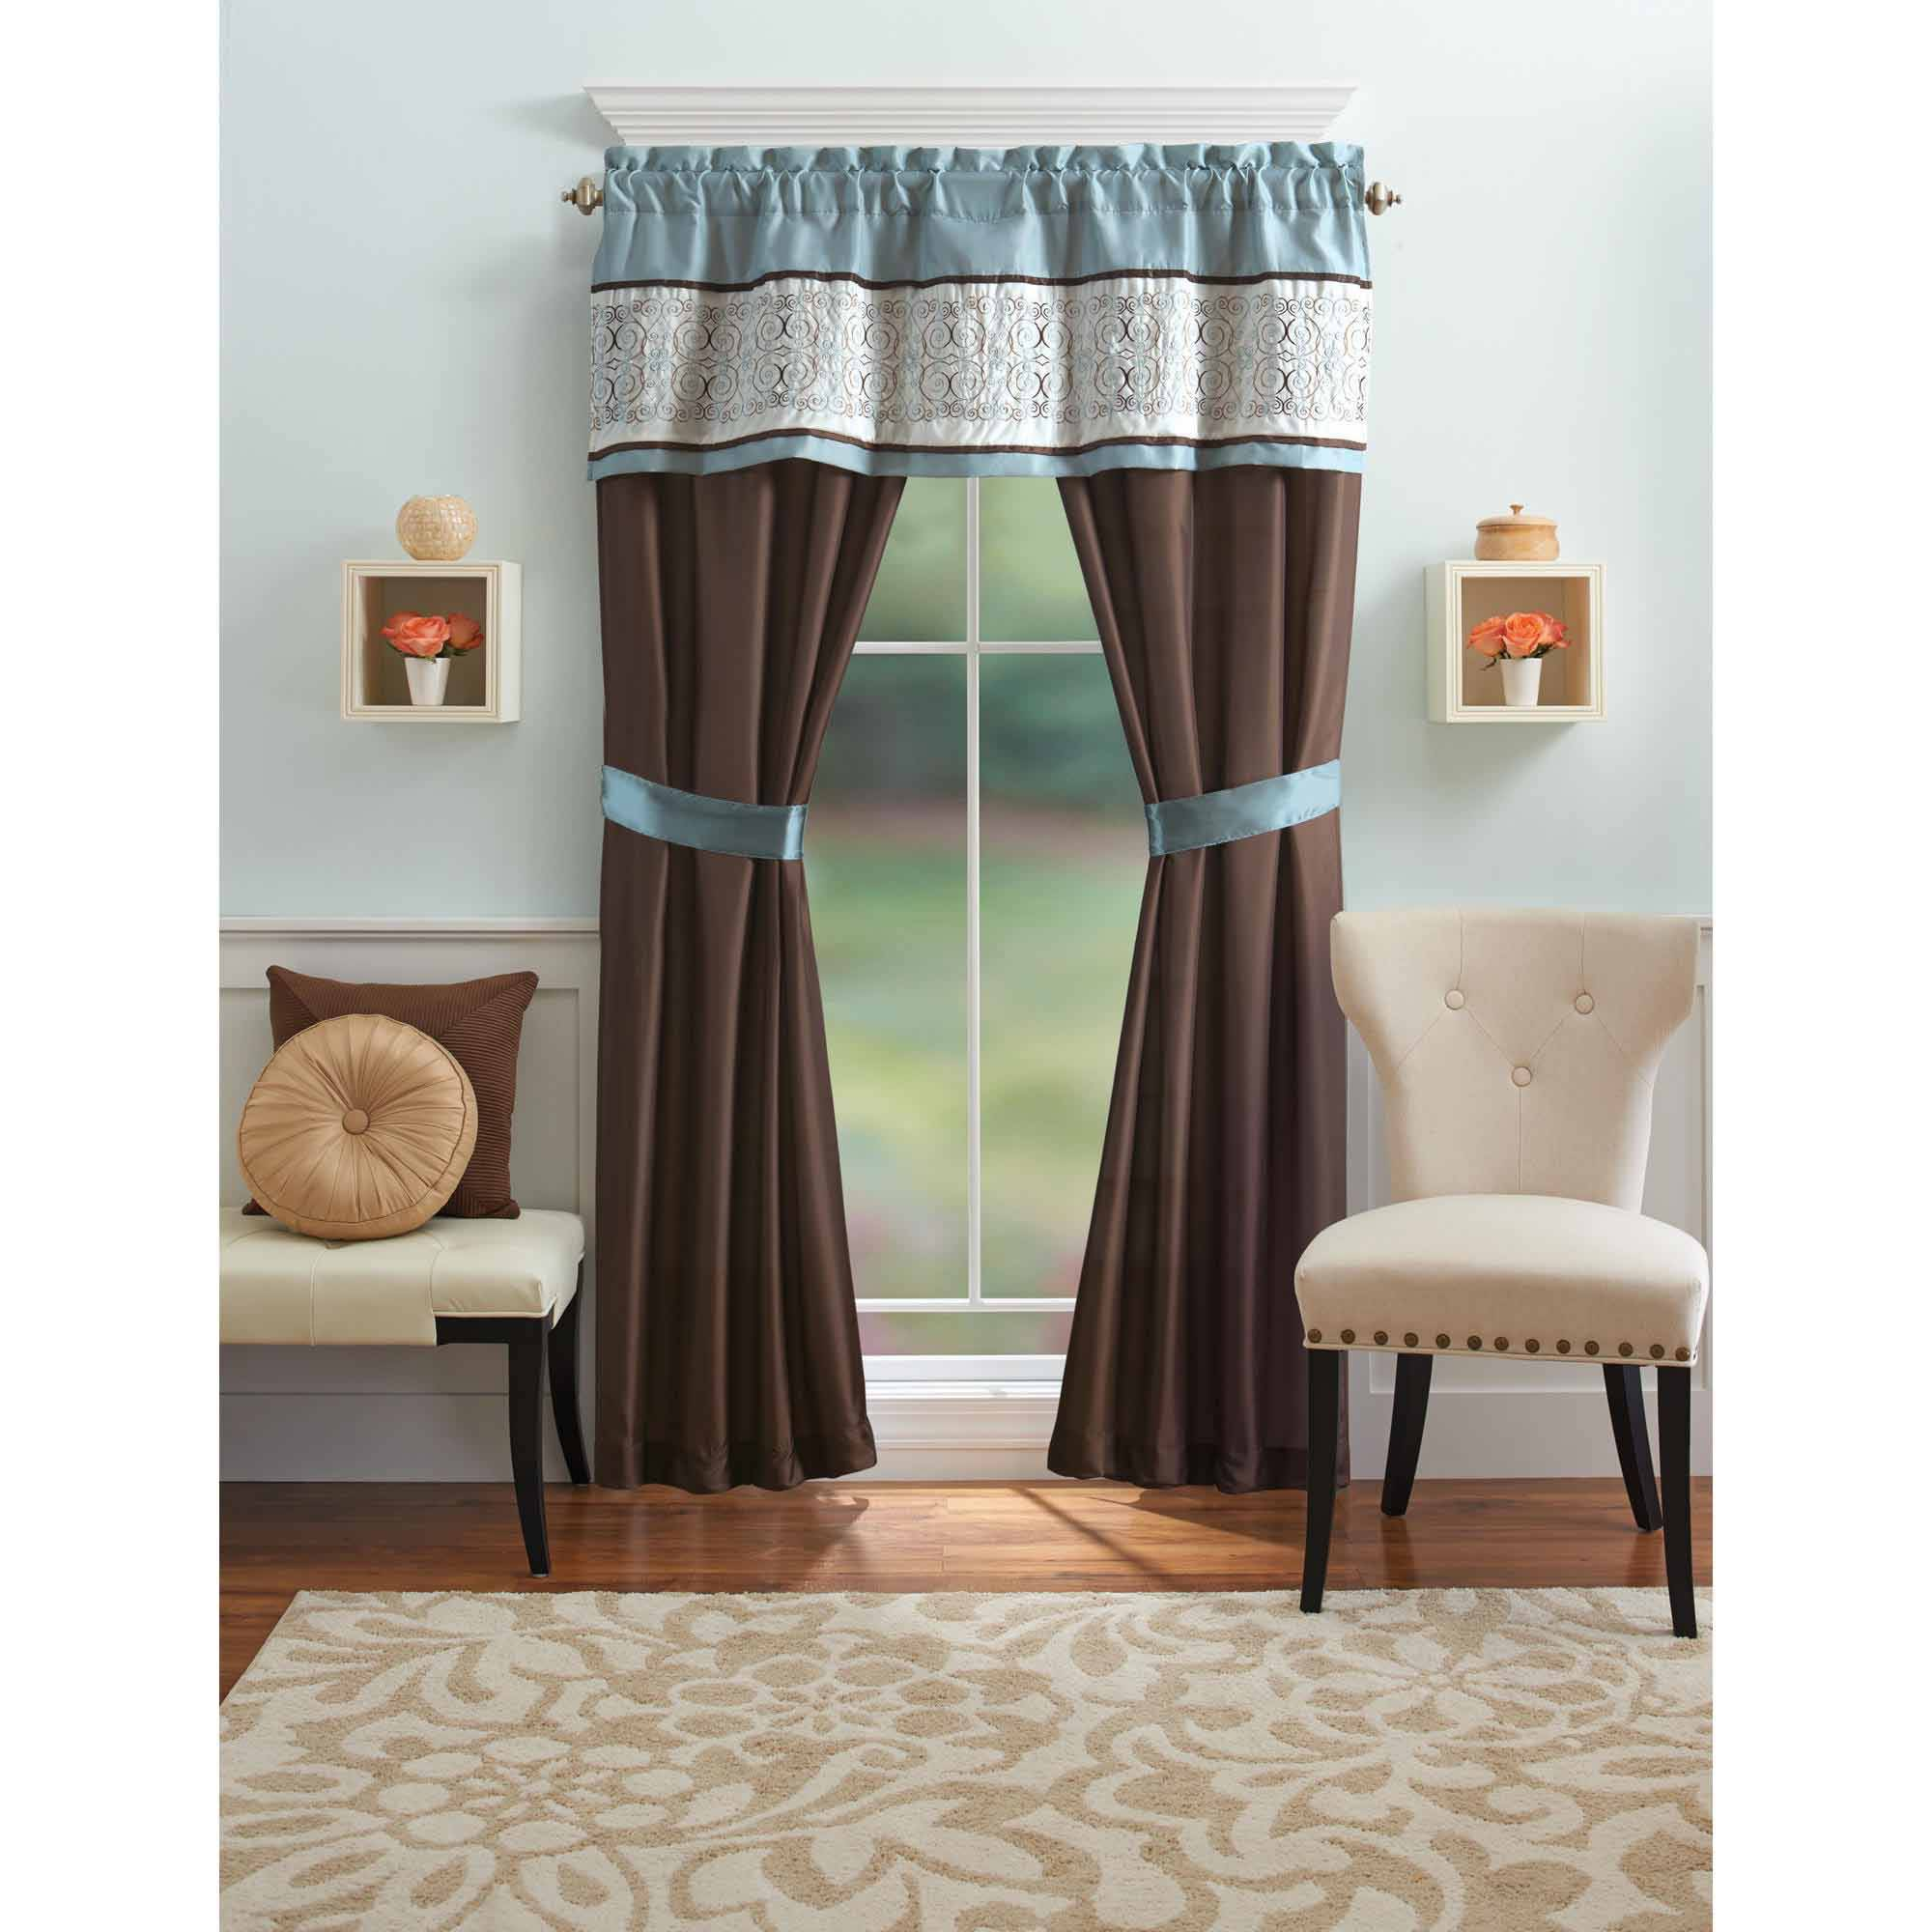 better homes and gardens blue ombre scroll 5 piece window curtains set curtain panels and valance included walmart com